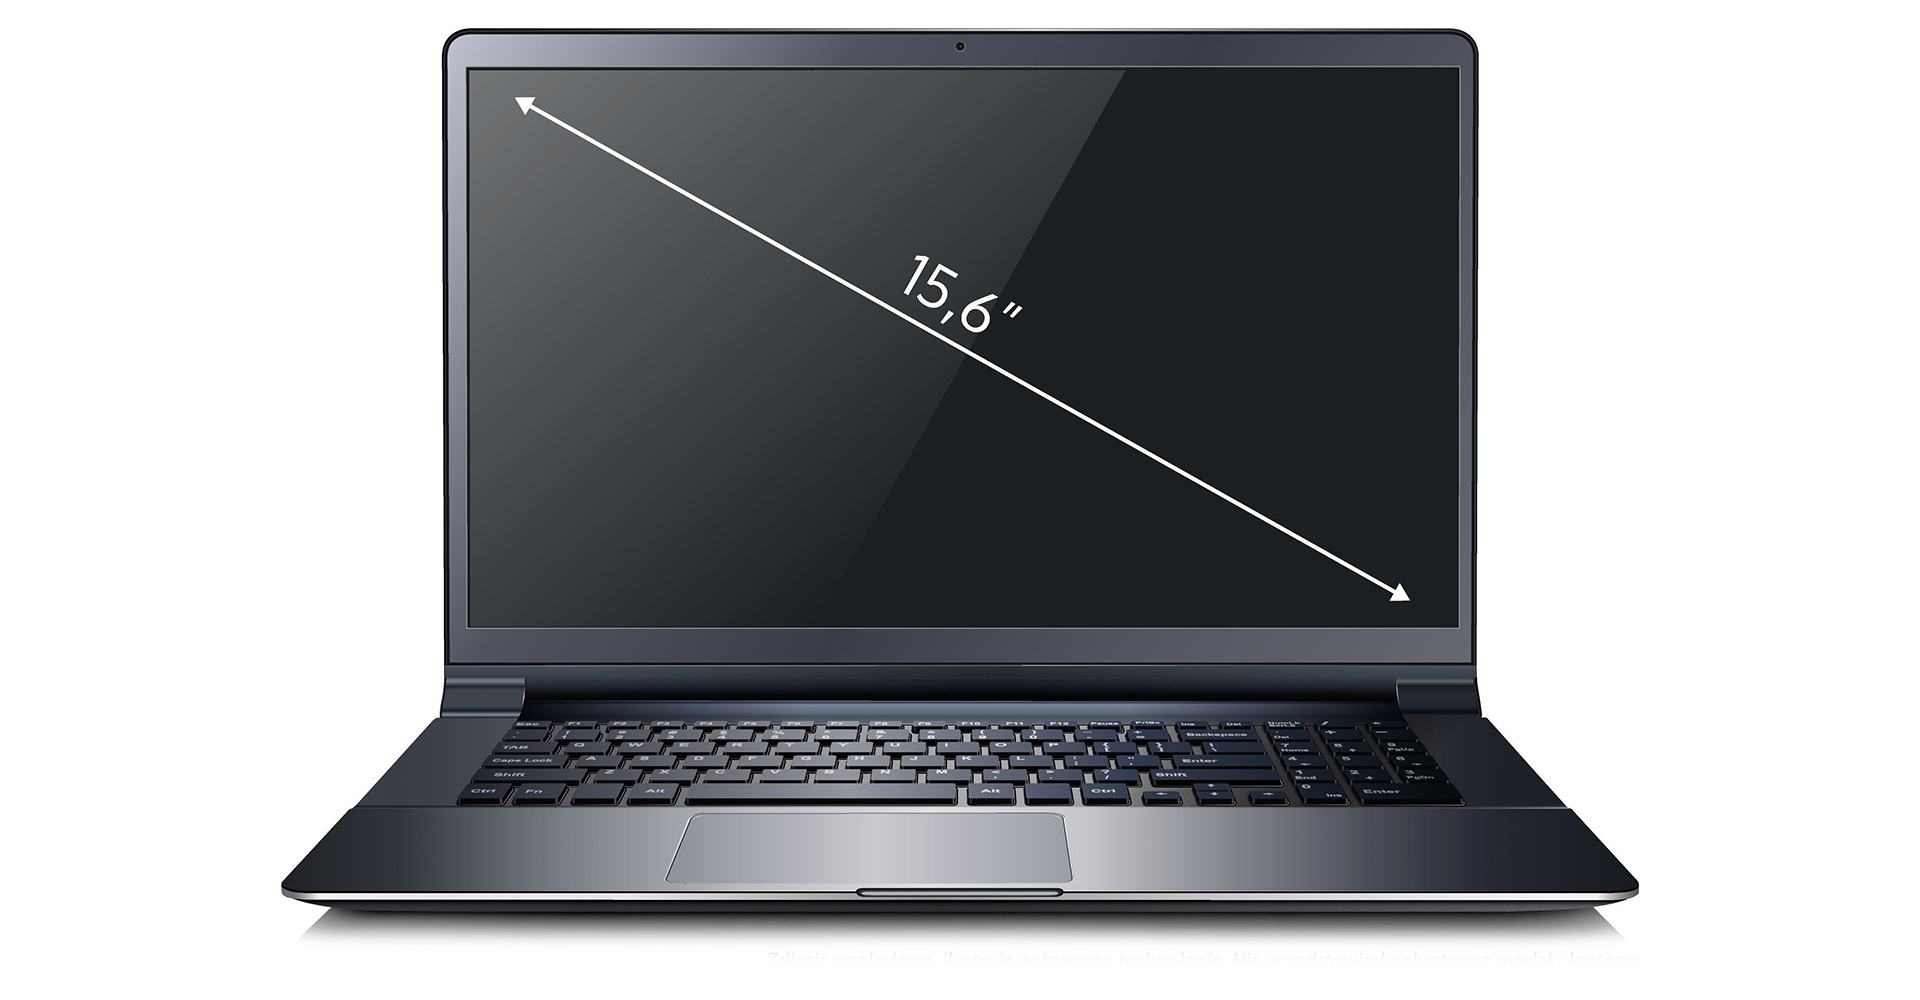 Dell Inspiron 15 3567 i3-7020U 8GB 128 GB Win10H                             15.6 collas pa diagonāli